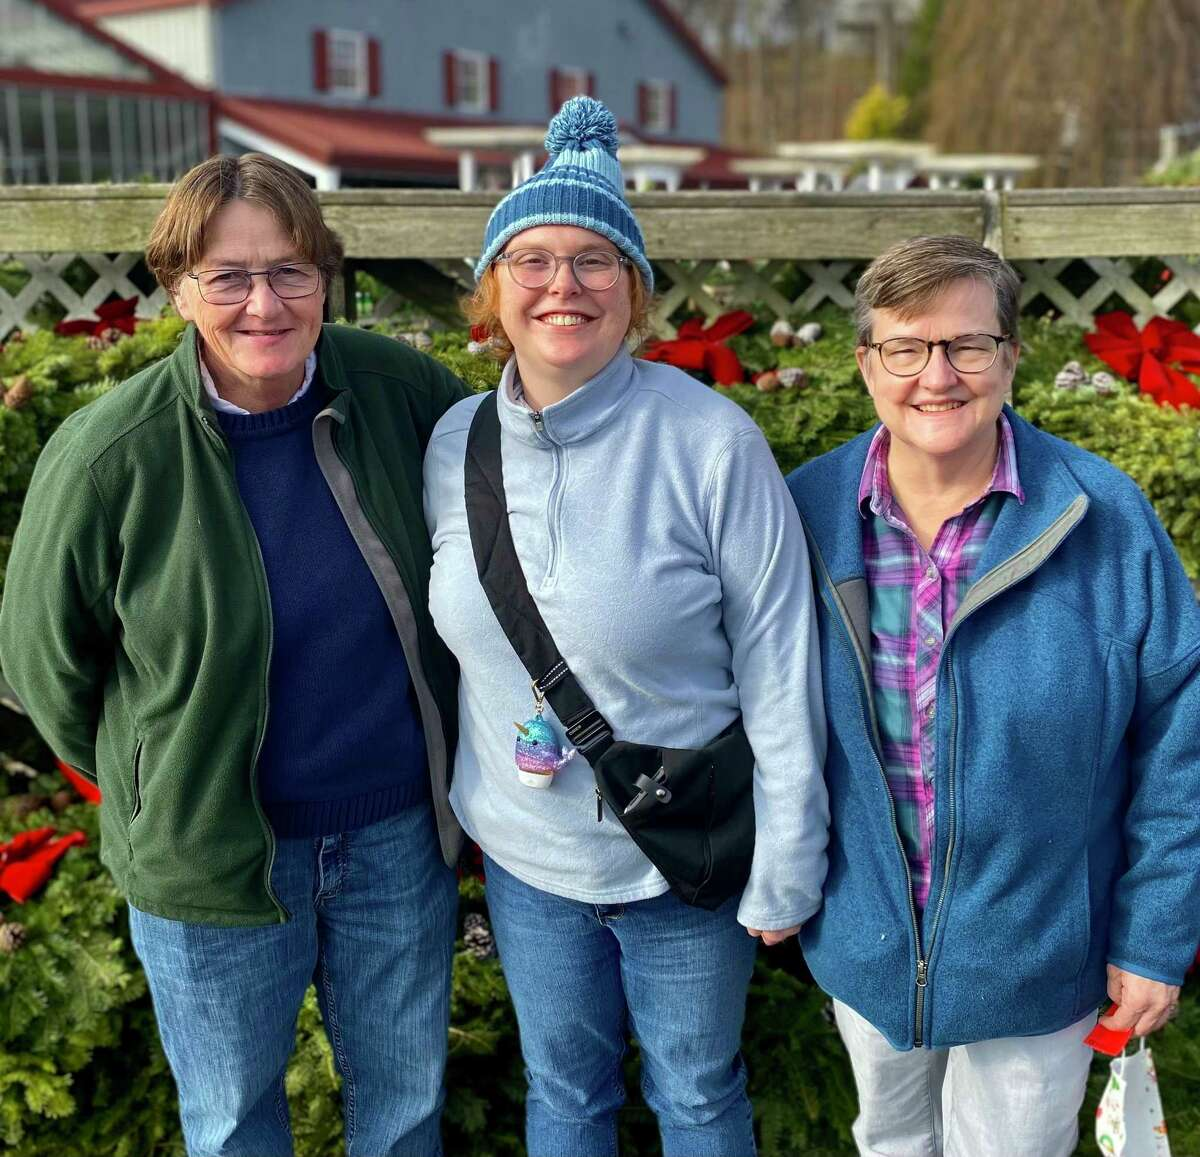 Madison resident Elizabeth Gardner, who has an exceedingly rare genetic condition, is raising money for a nonprofit that will be providing her with a service dog trained to fit her needs. She's flanked by her mothers Catherine Griffith, left, and Donna Gardner.